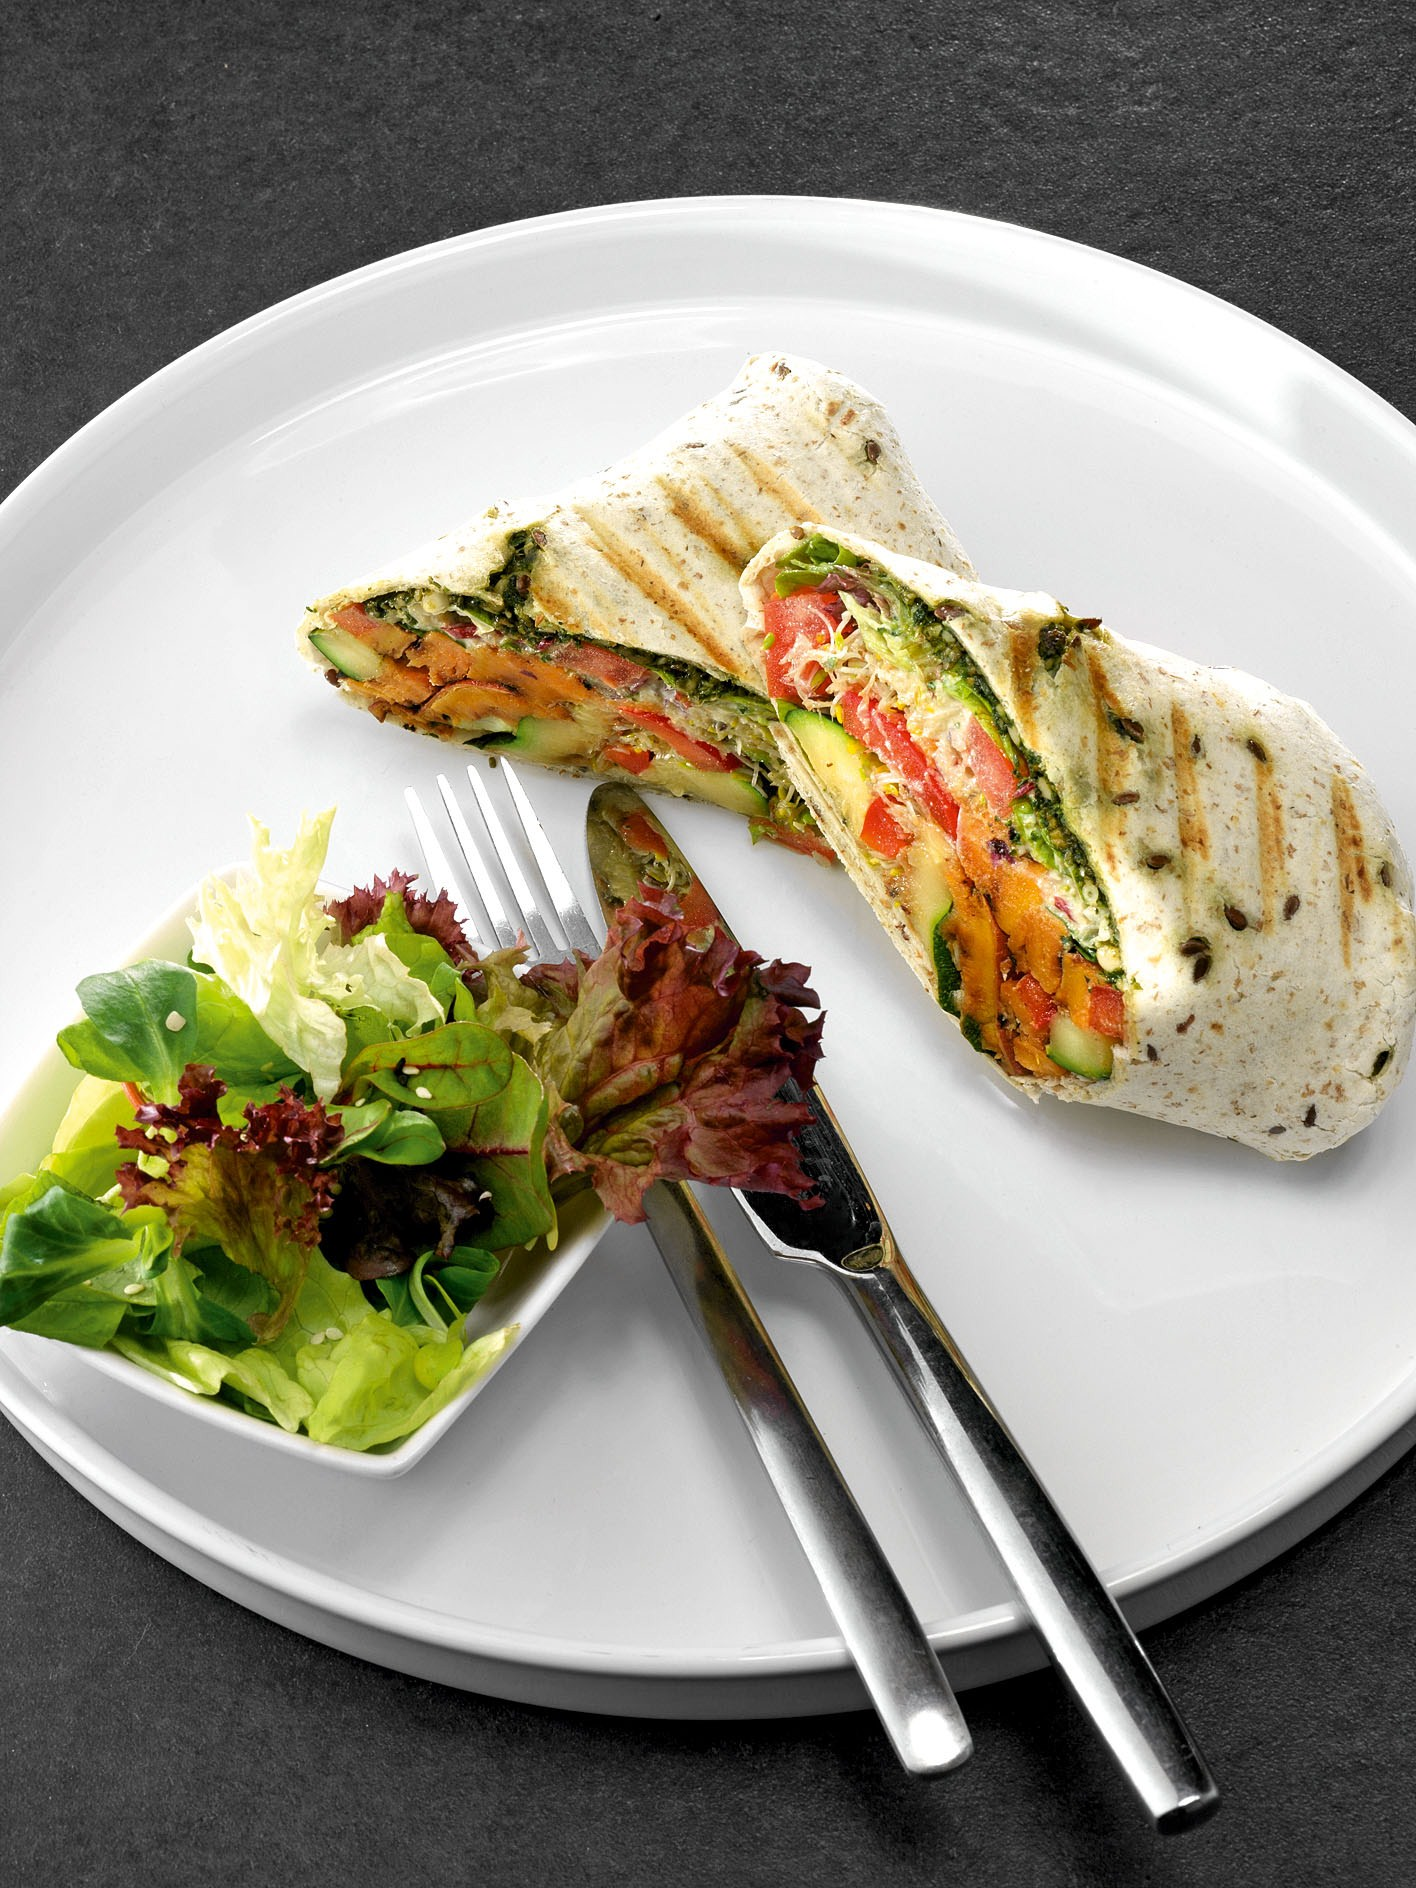 Burrito with grilled vegetables and pesto